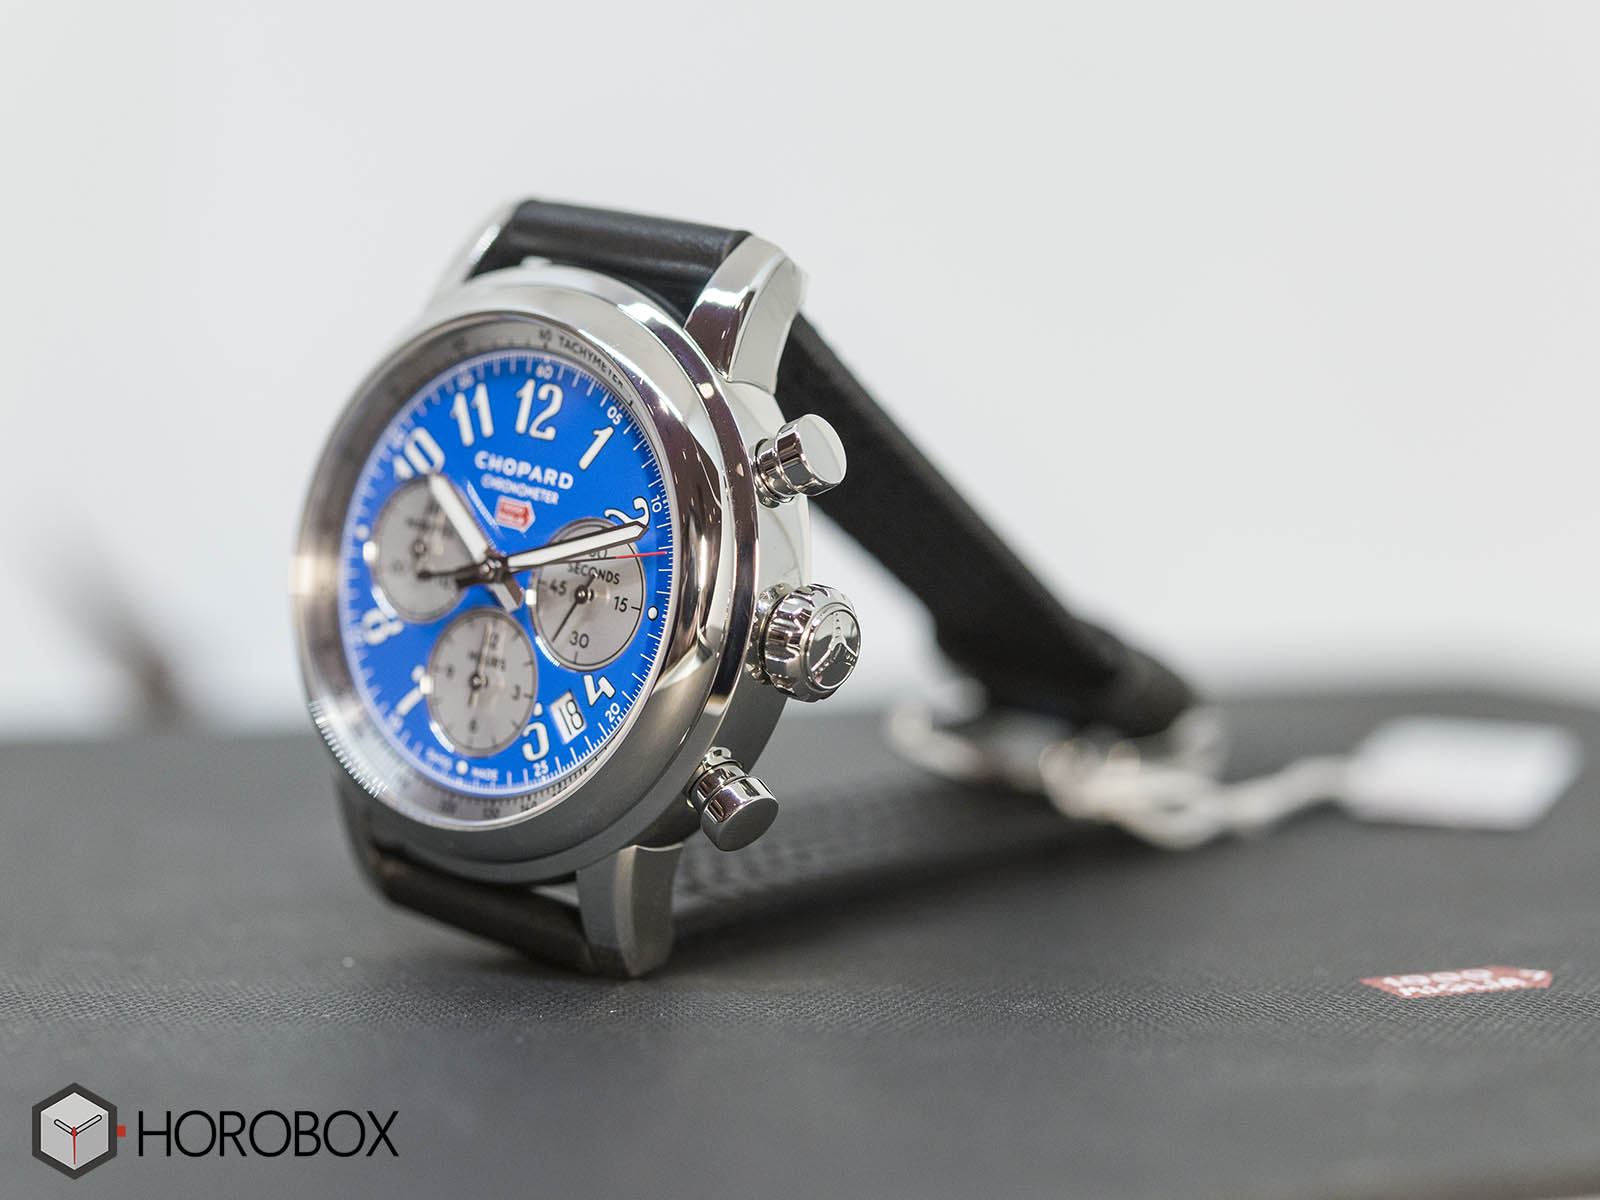 168589-3010-chopard-mille-miglia-racing-colors-limited-edition-4.jpg